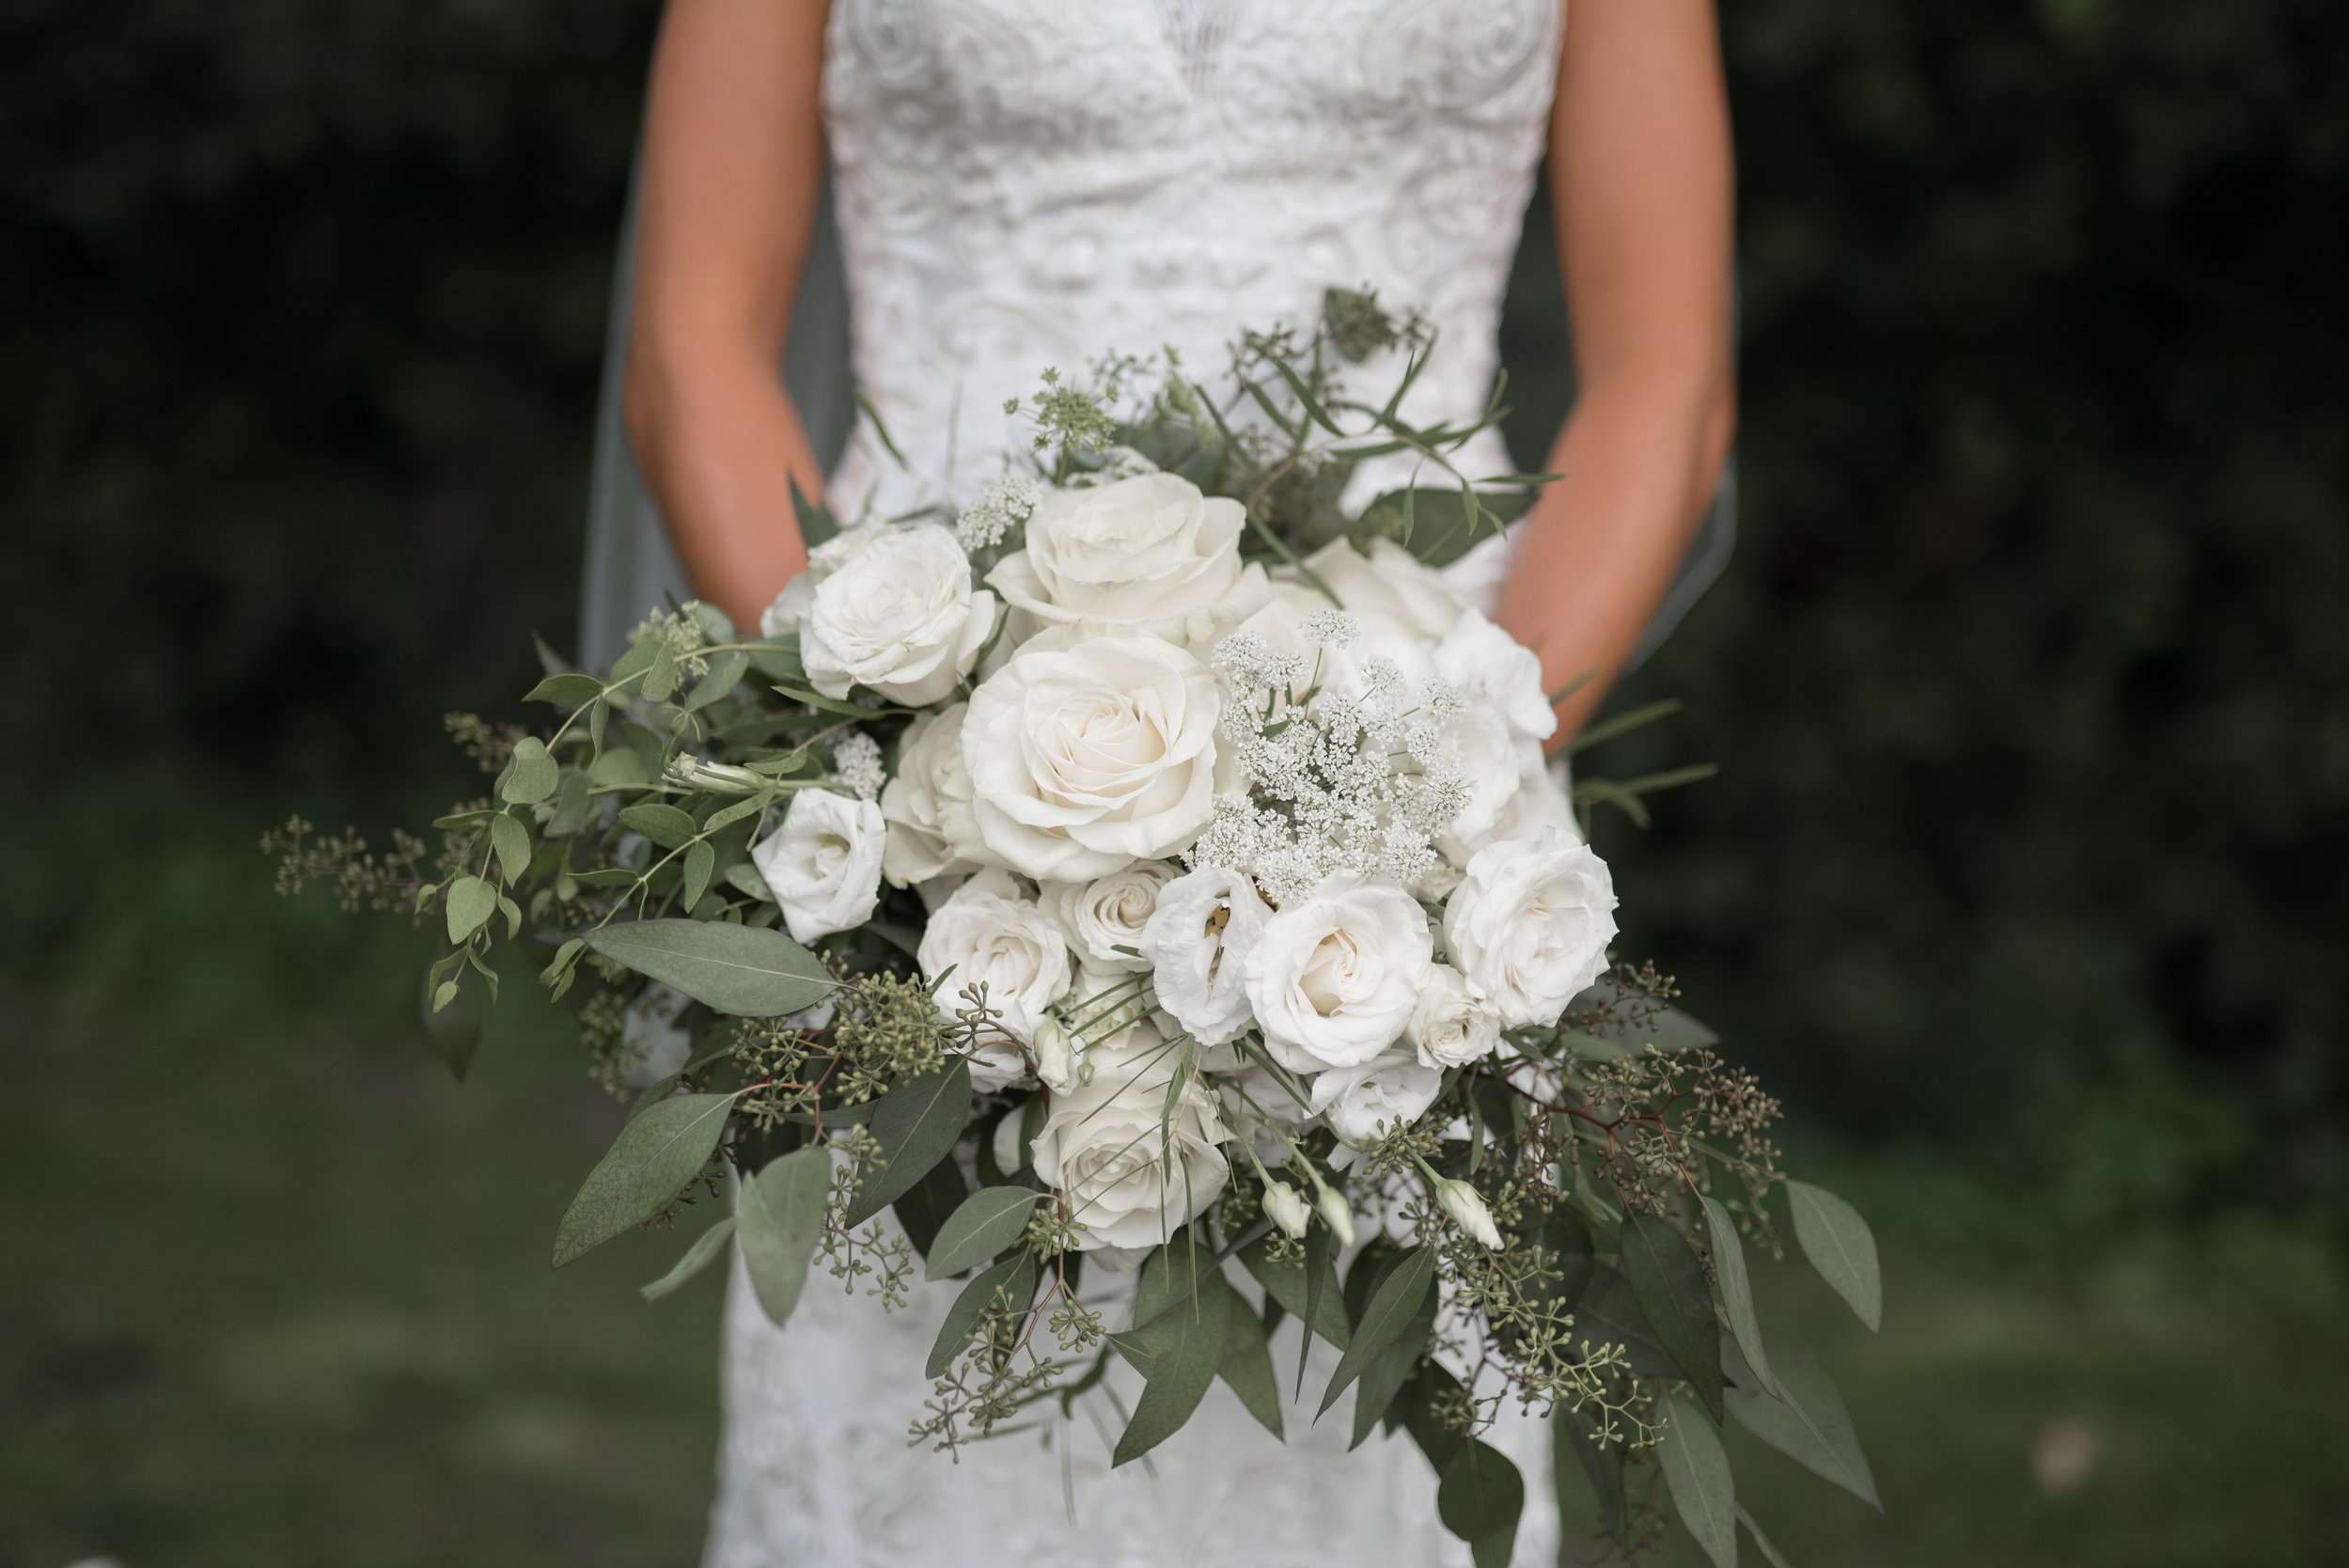 White with greenery bridal bouquet